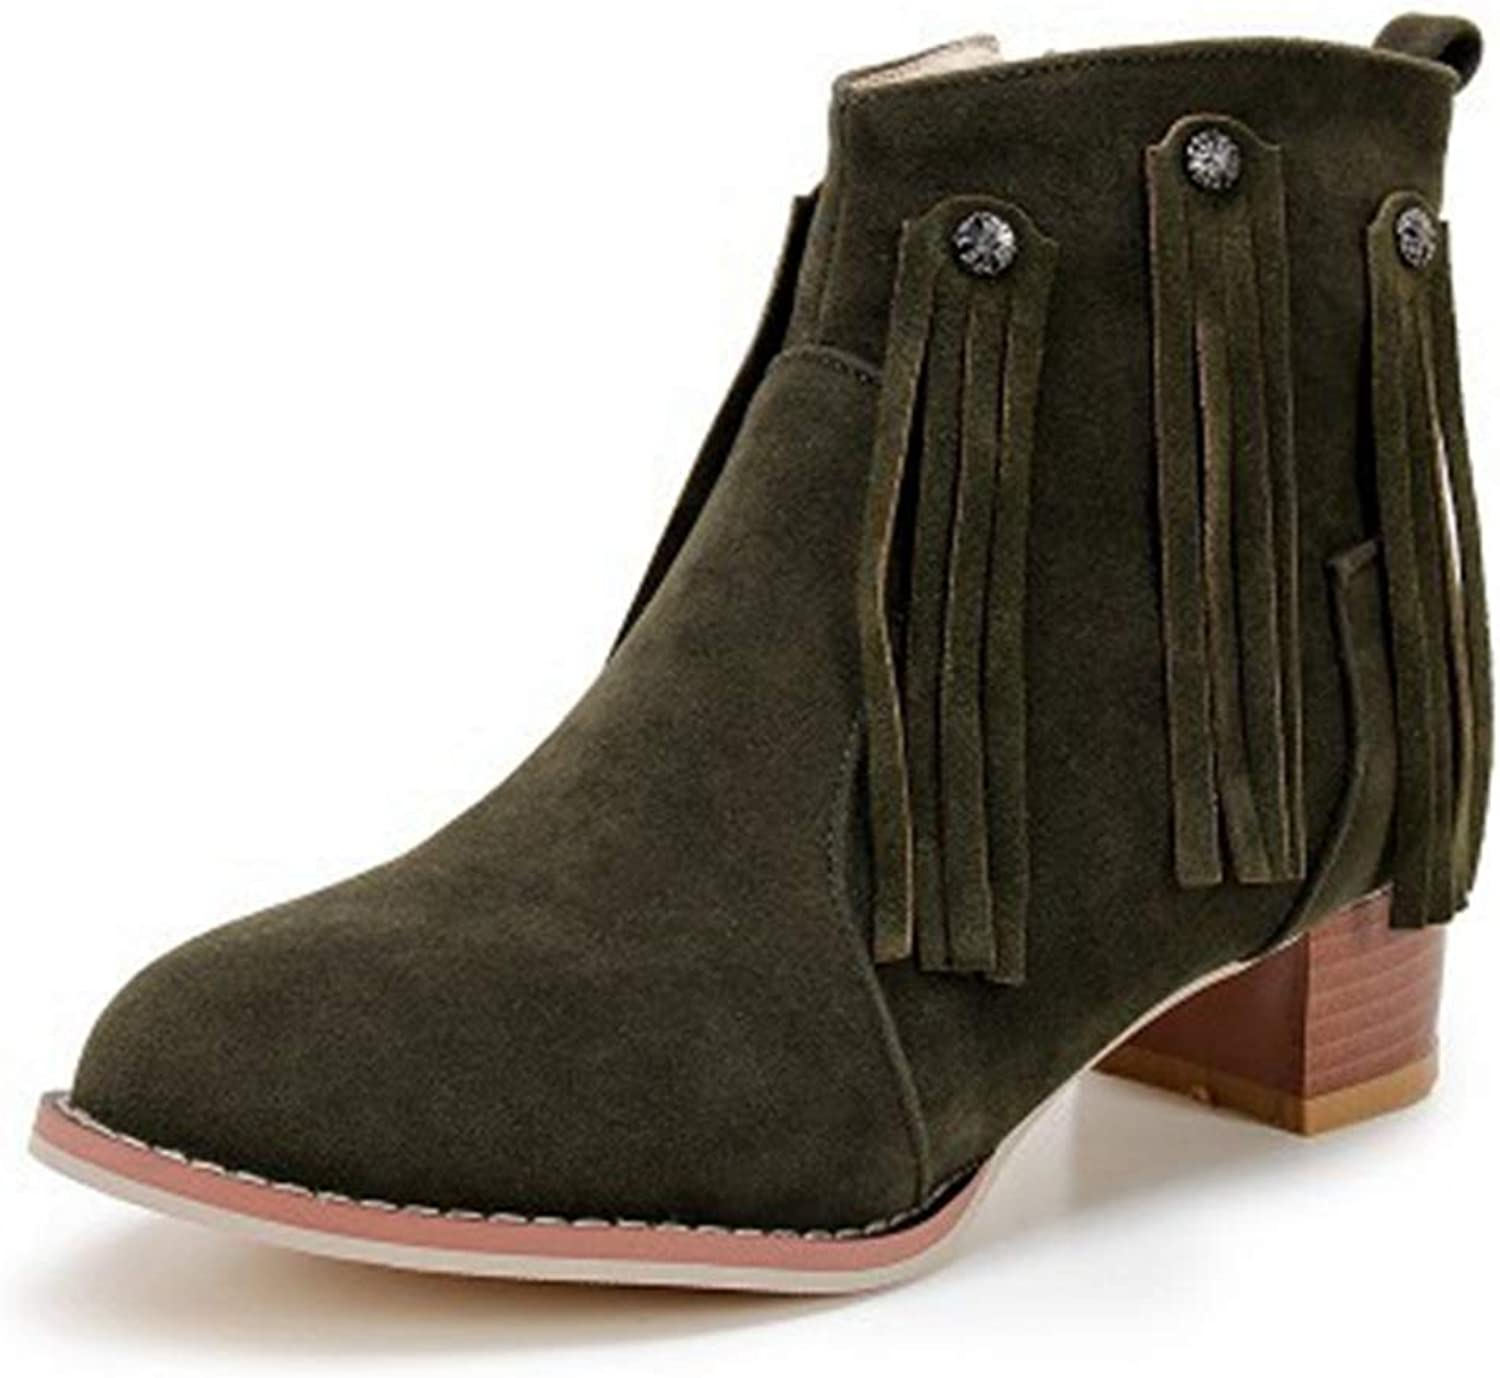 KEREE Women's Fringe Retro Chunky Mid Heel Ankle Boots Suede Platform Bootie Stacked Heel Tassel Boot shoes